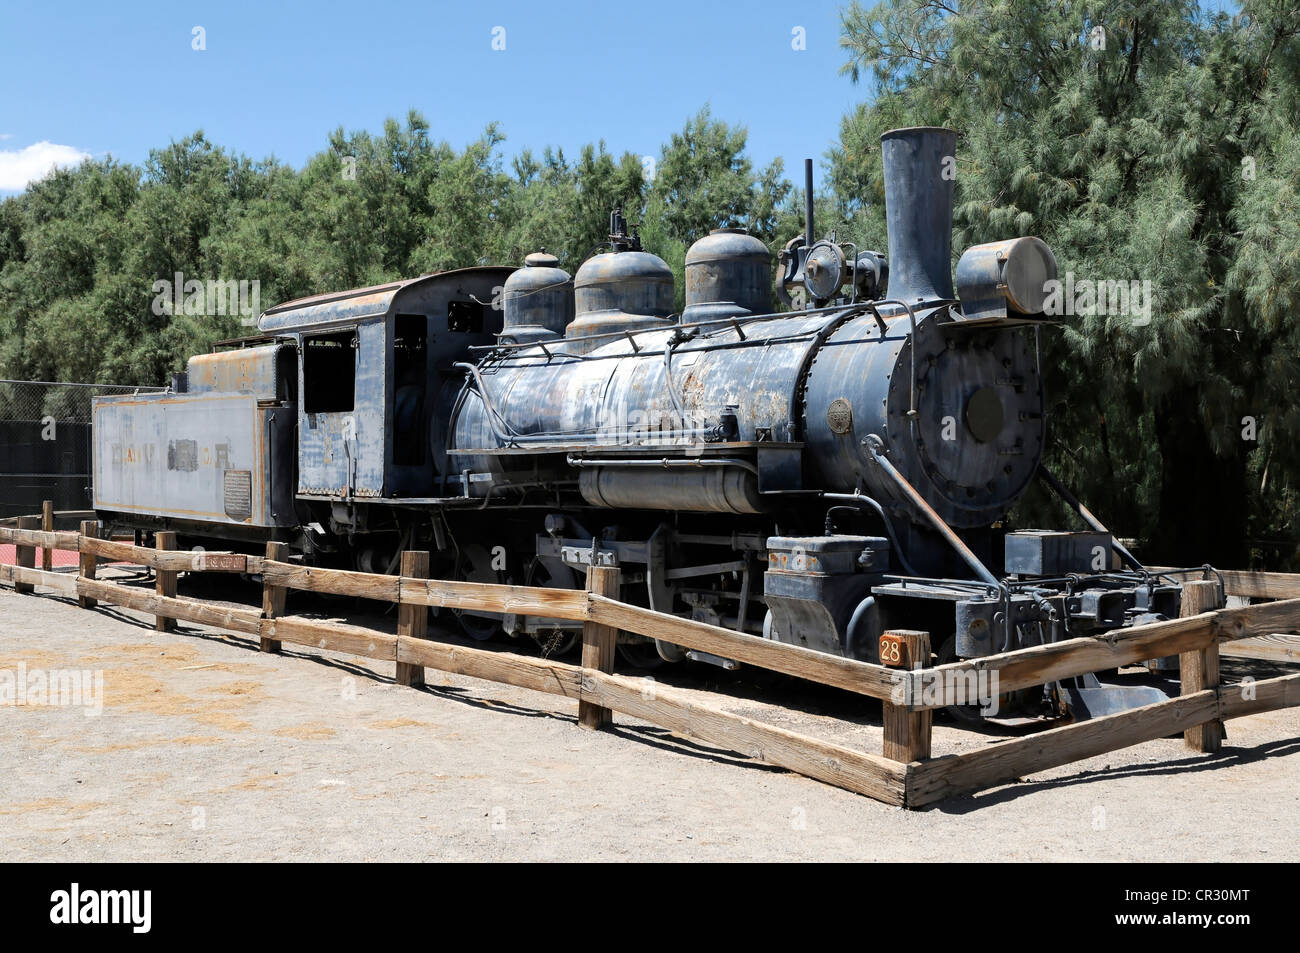 Historic steam locomotive, Furnace Creek Ranch Resort Oasis, Death